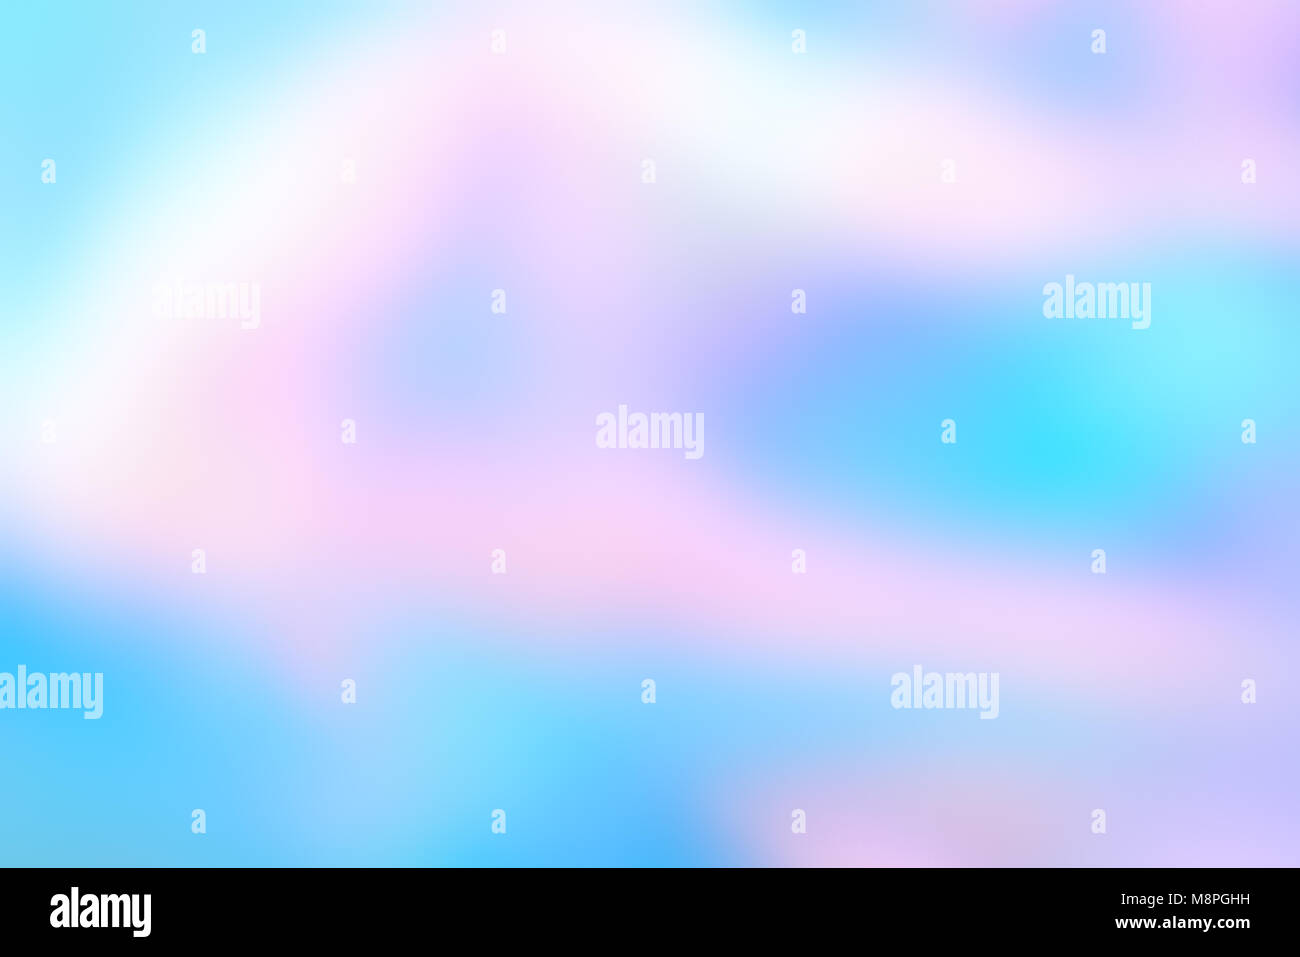 Abstract blurred holographic foil background in light colors. Wonderful magic background. Colorful wallpaper. Stock Photo